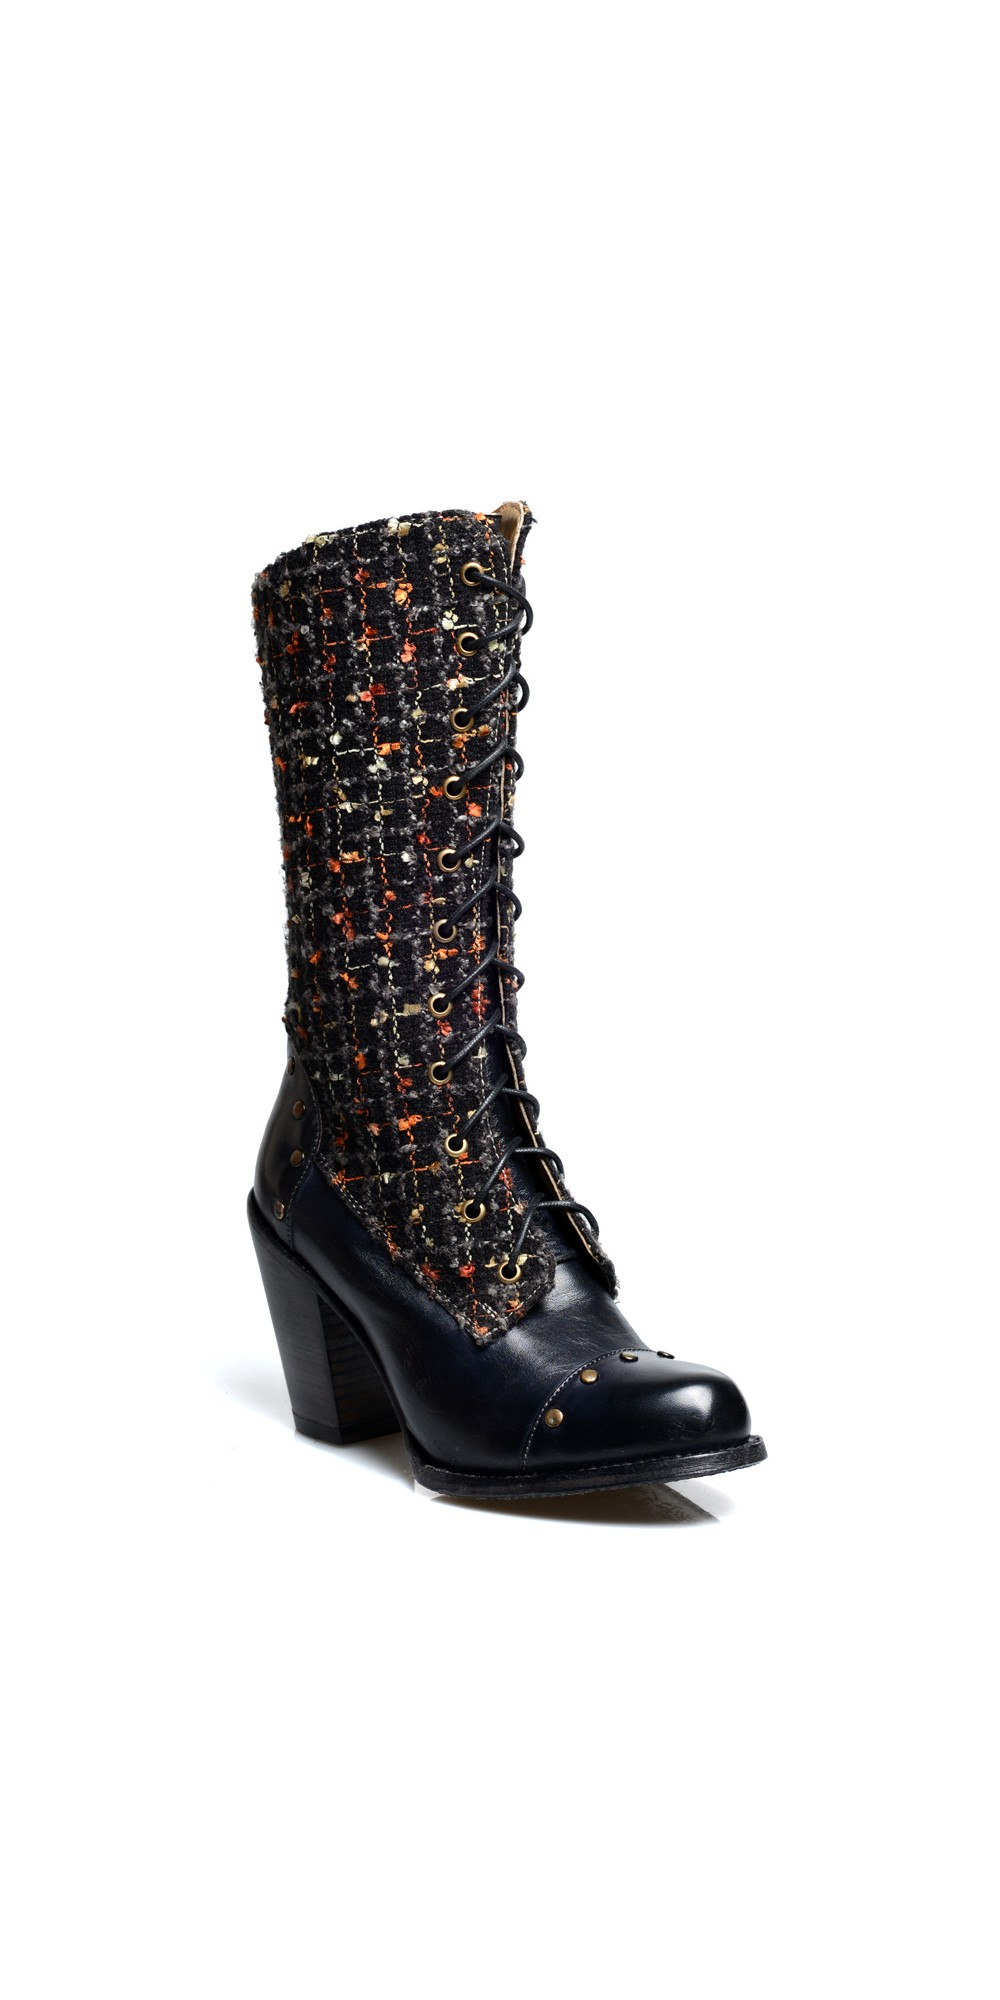 Modern Vintage Leather Mid-Calf Boots hot sale cheap online clearance footlocker obRXd